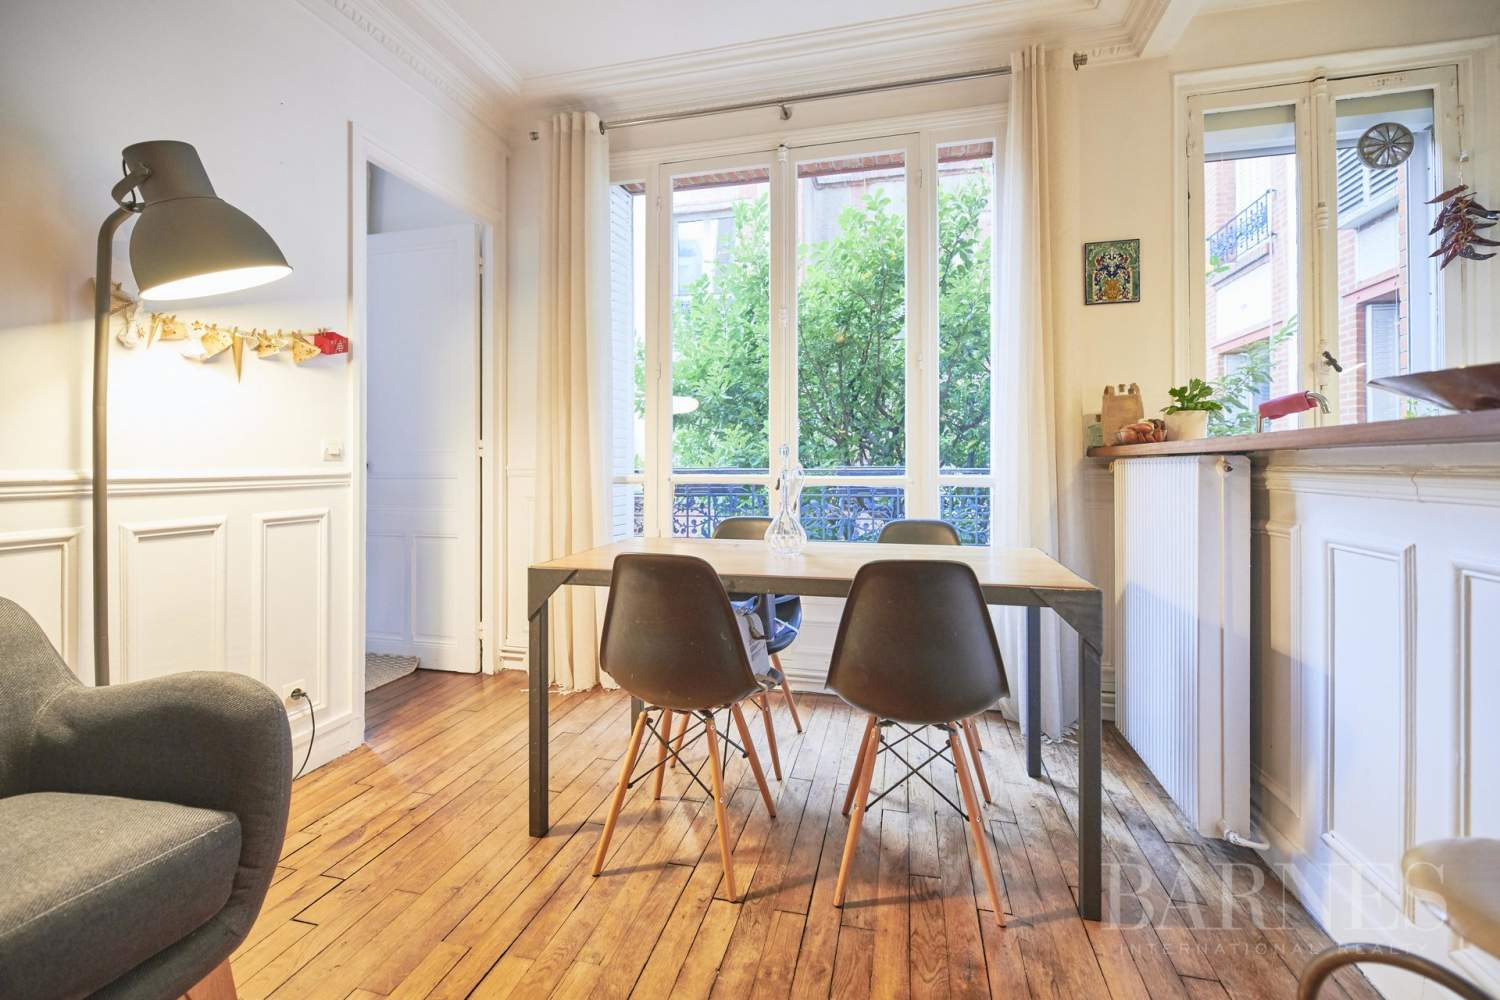 Barnes Boulogne Exclusive - Old apartment with charm - 2 bedrooms picture 2